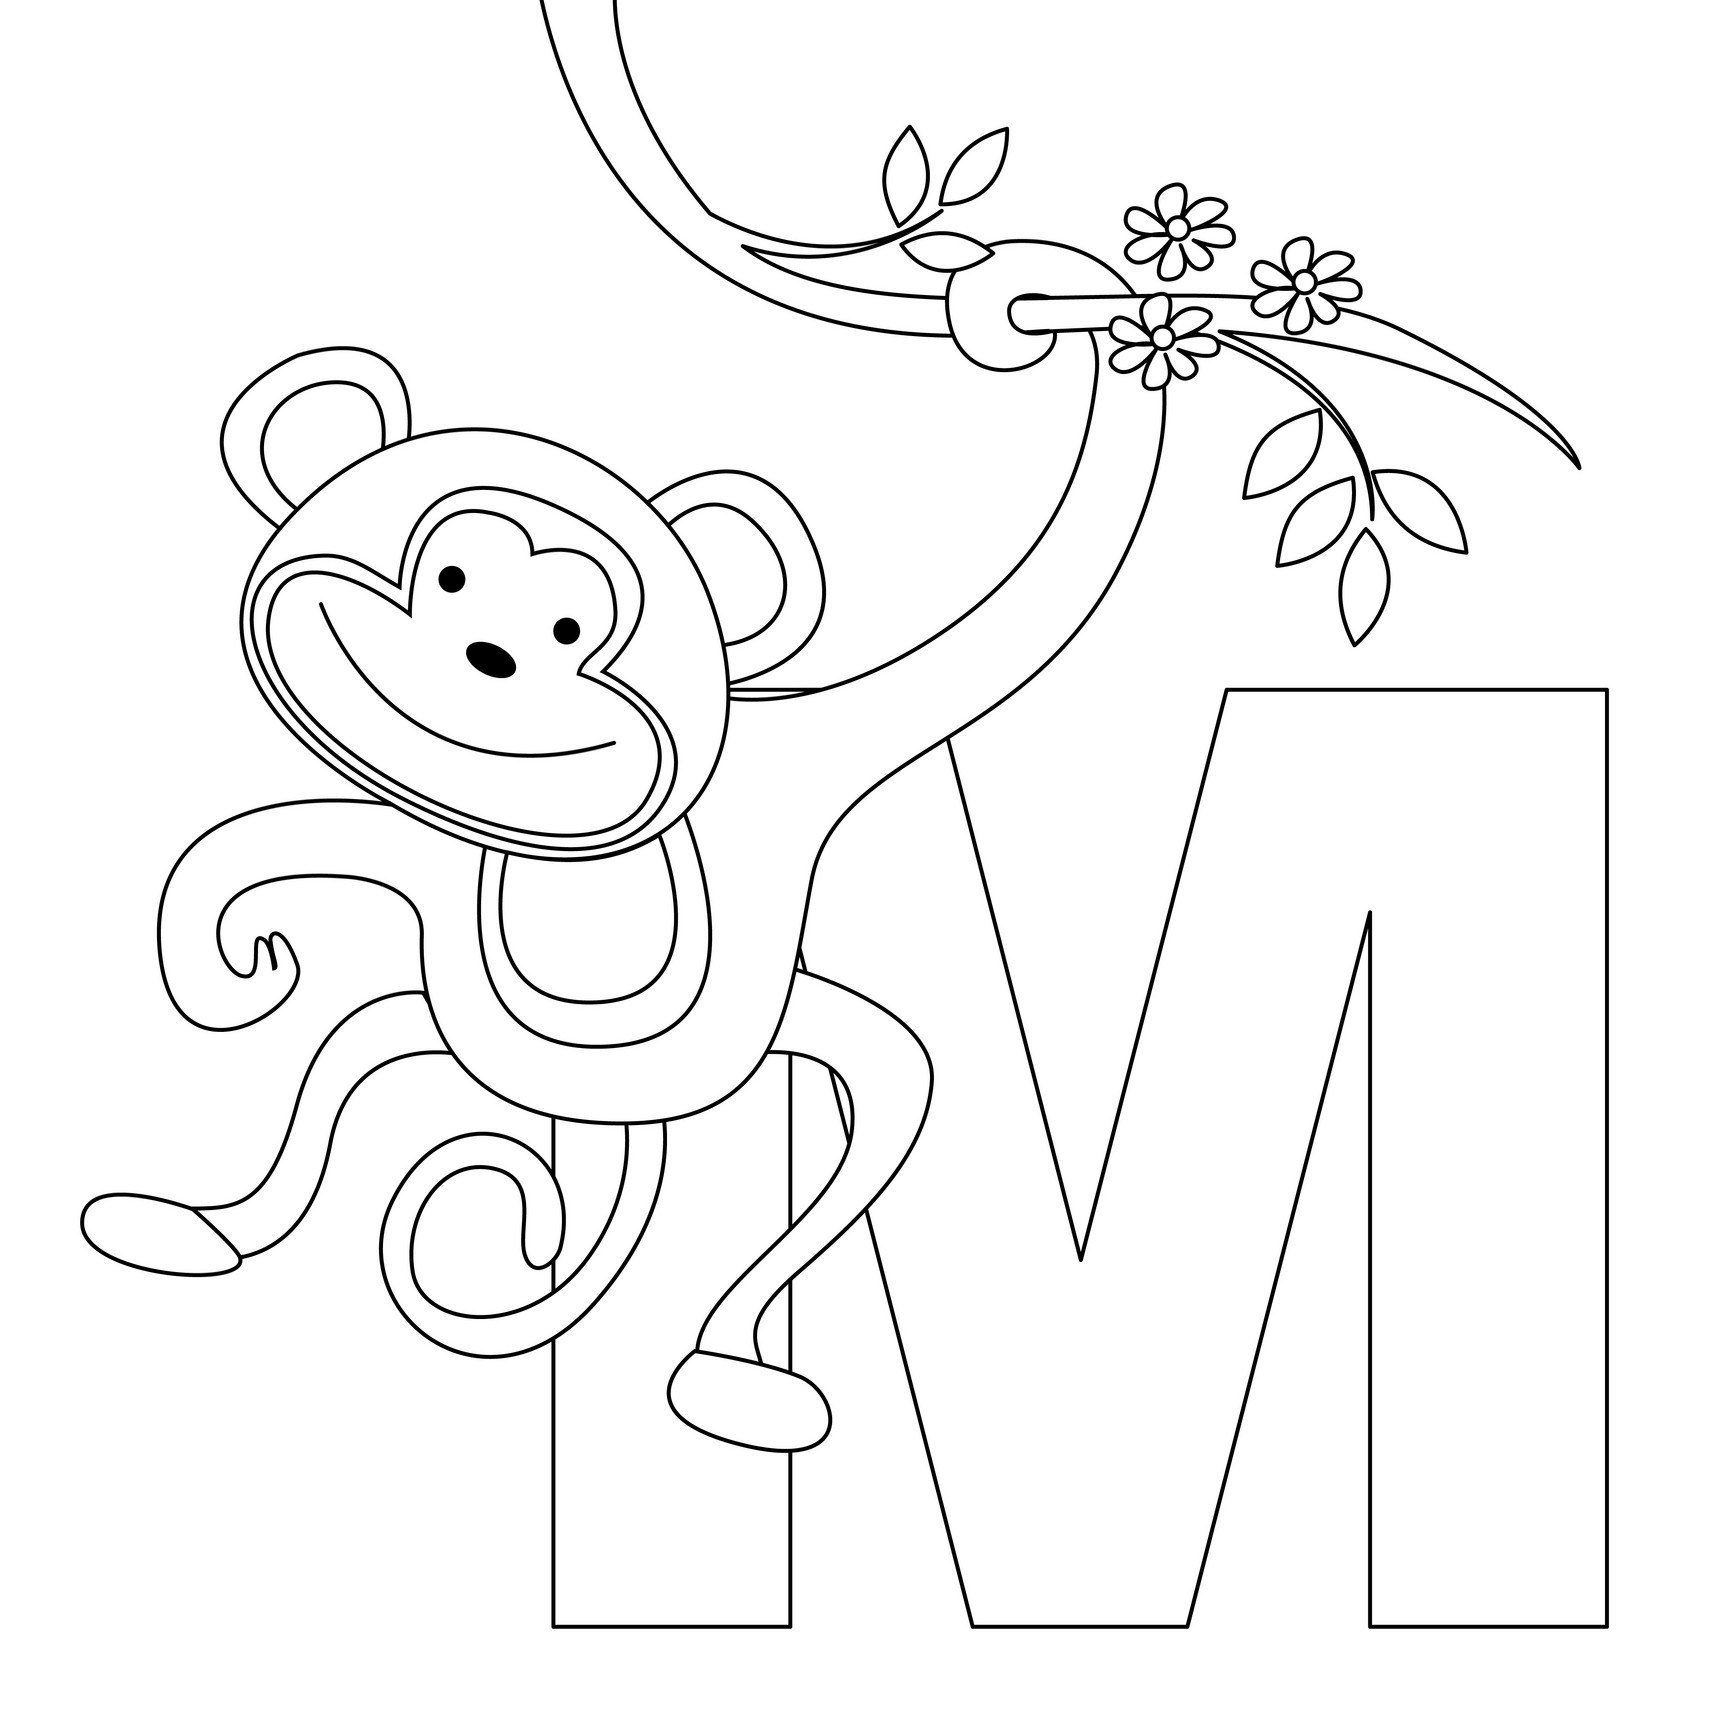 coloring pages for alphalbet - photo#17